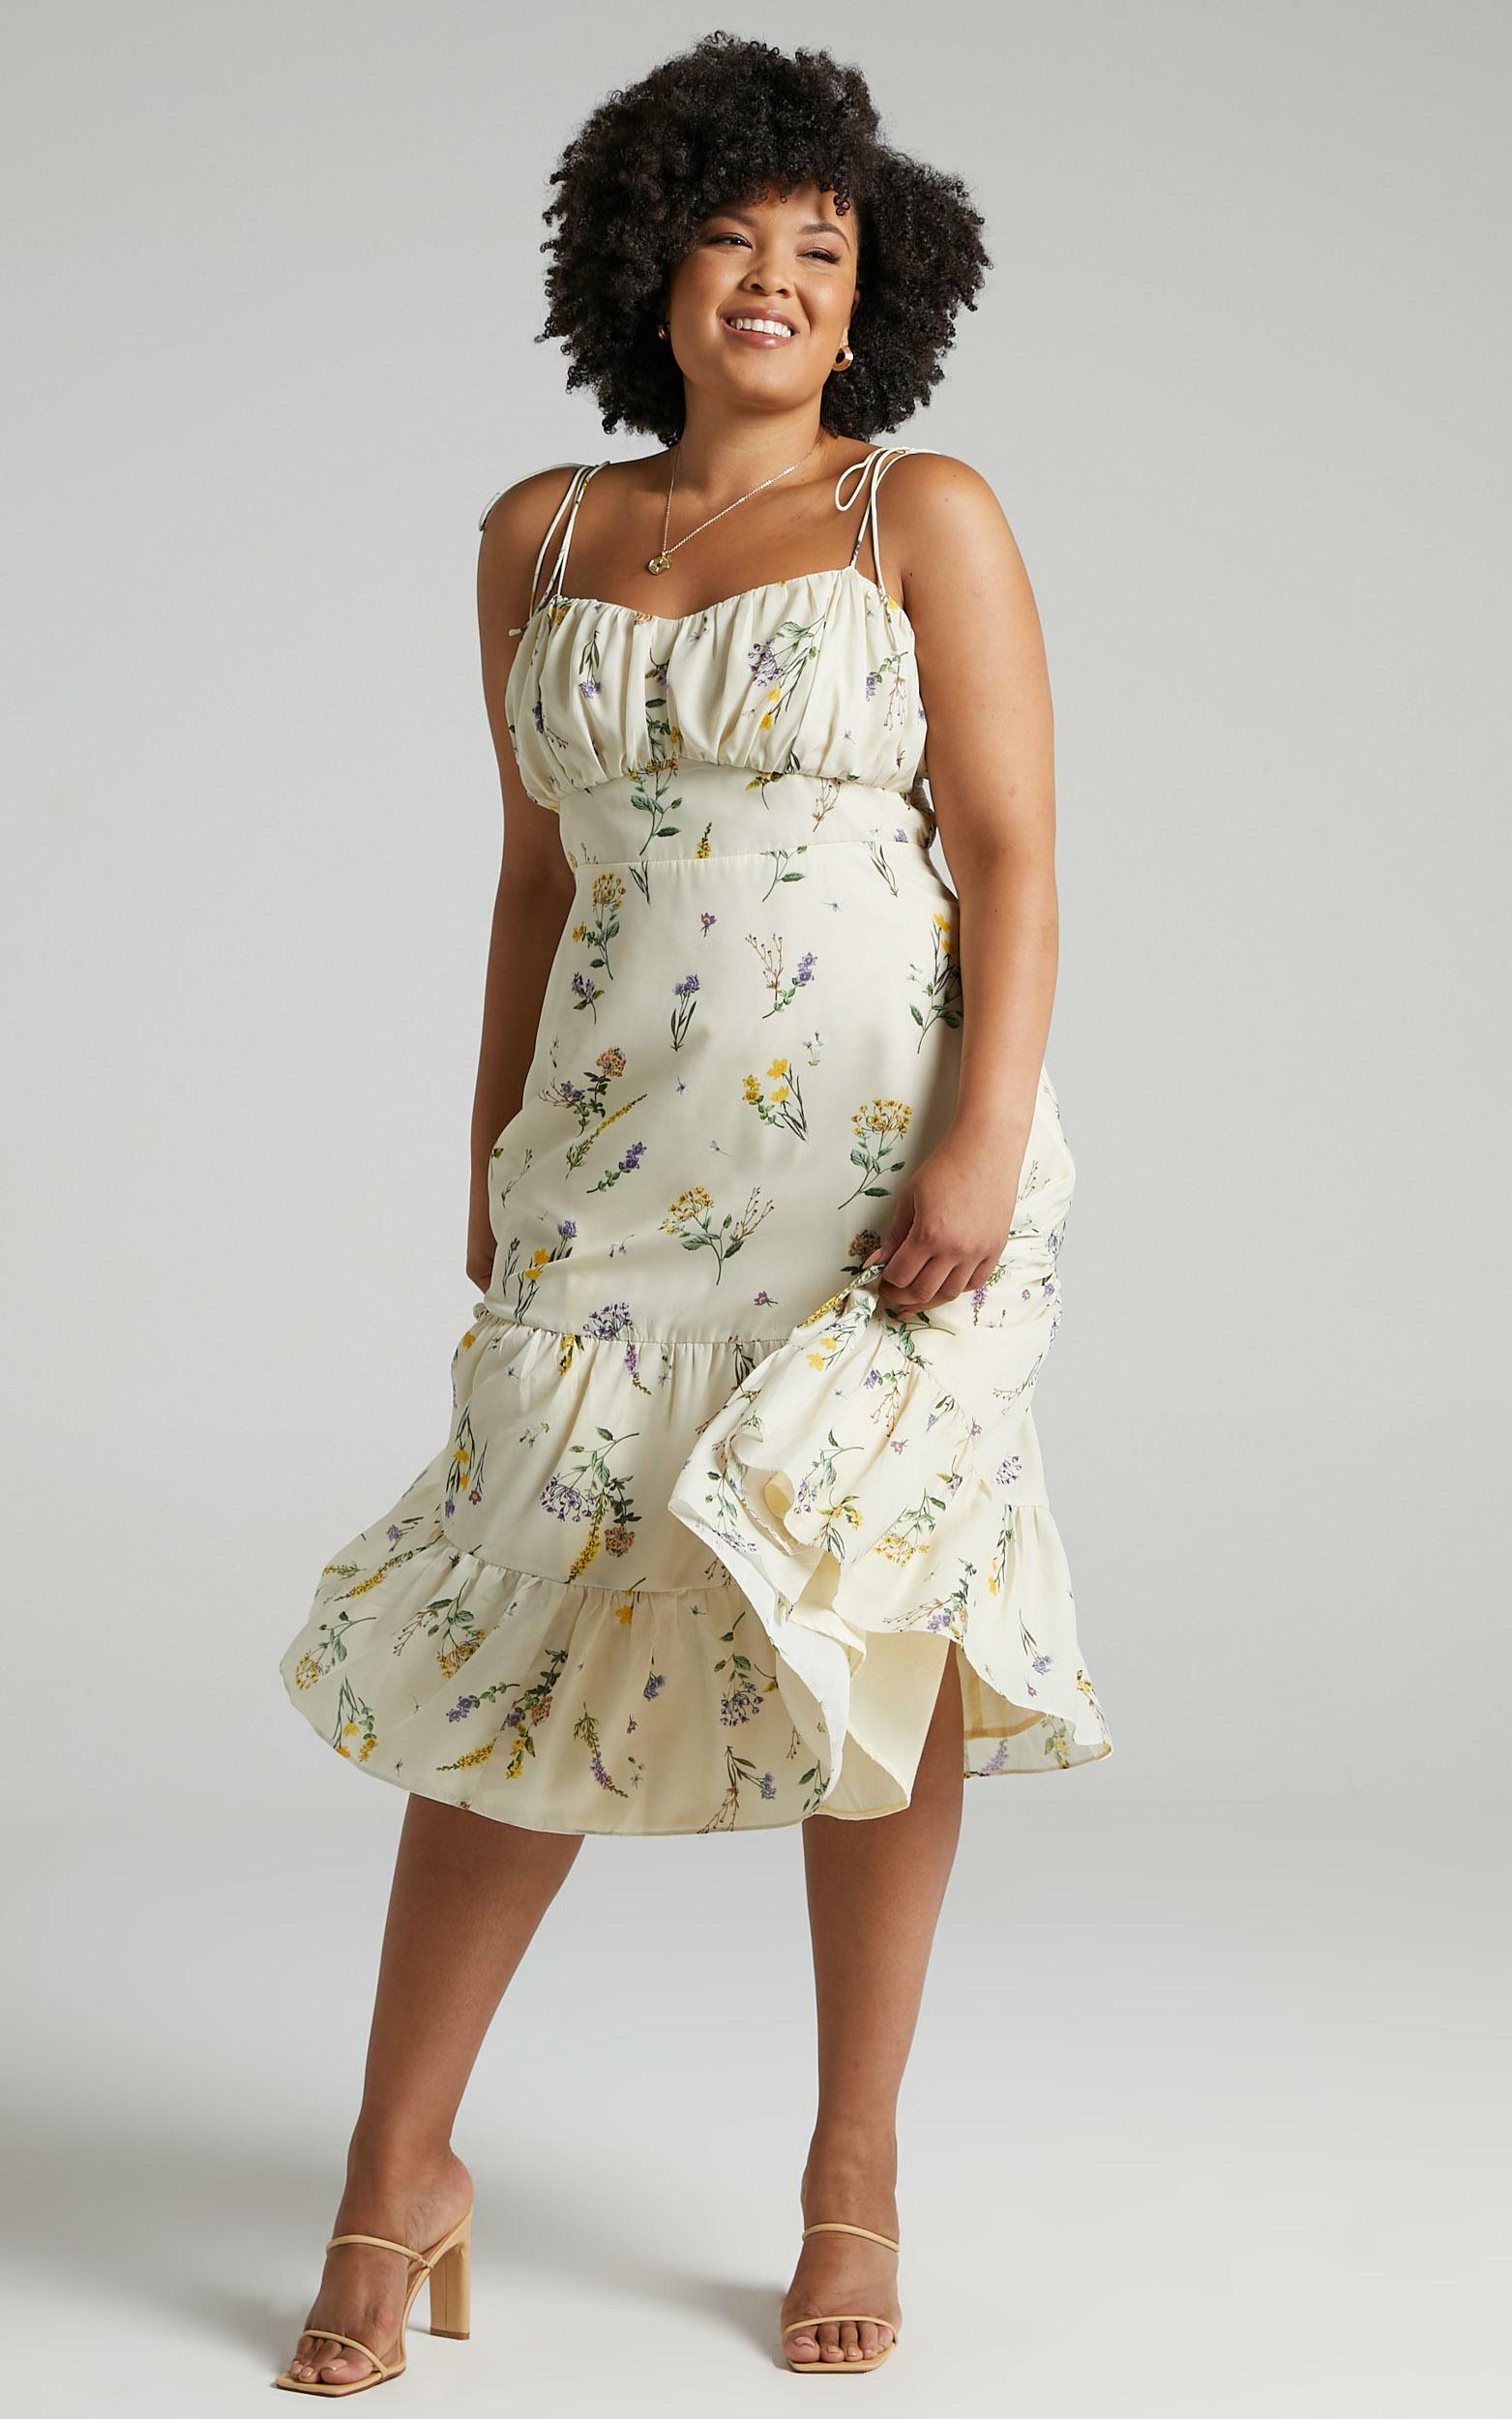 Monaco Sweetheart Midi Dress in Botanical floral - 04, CRE1, hi-res image number null